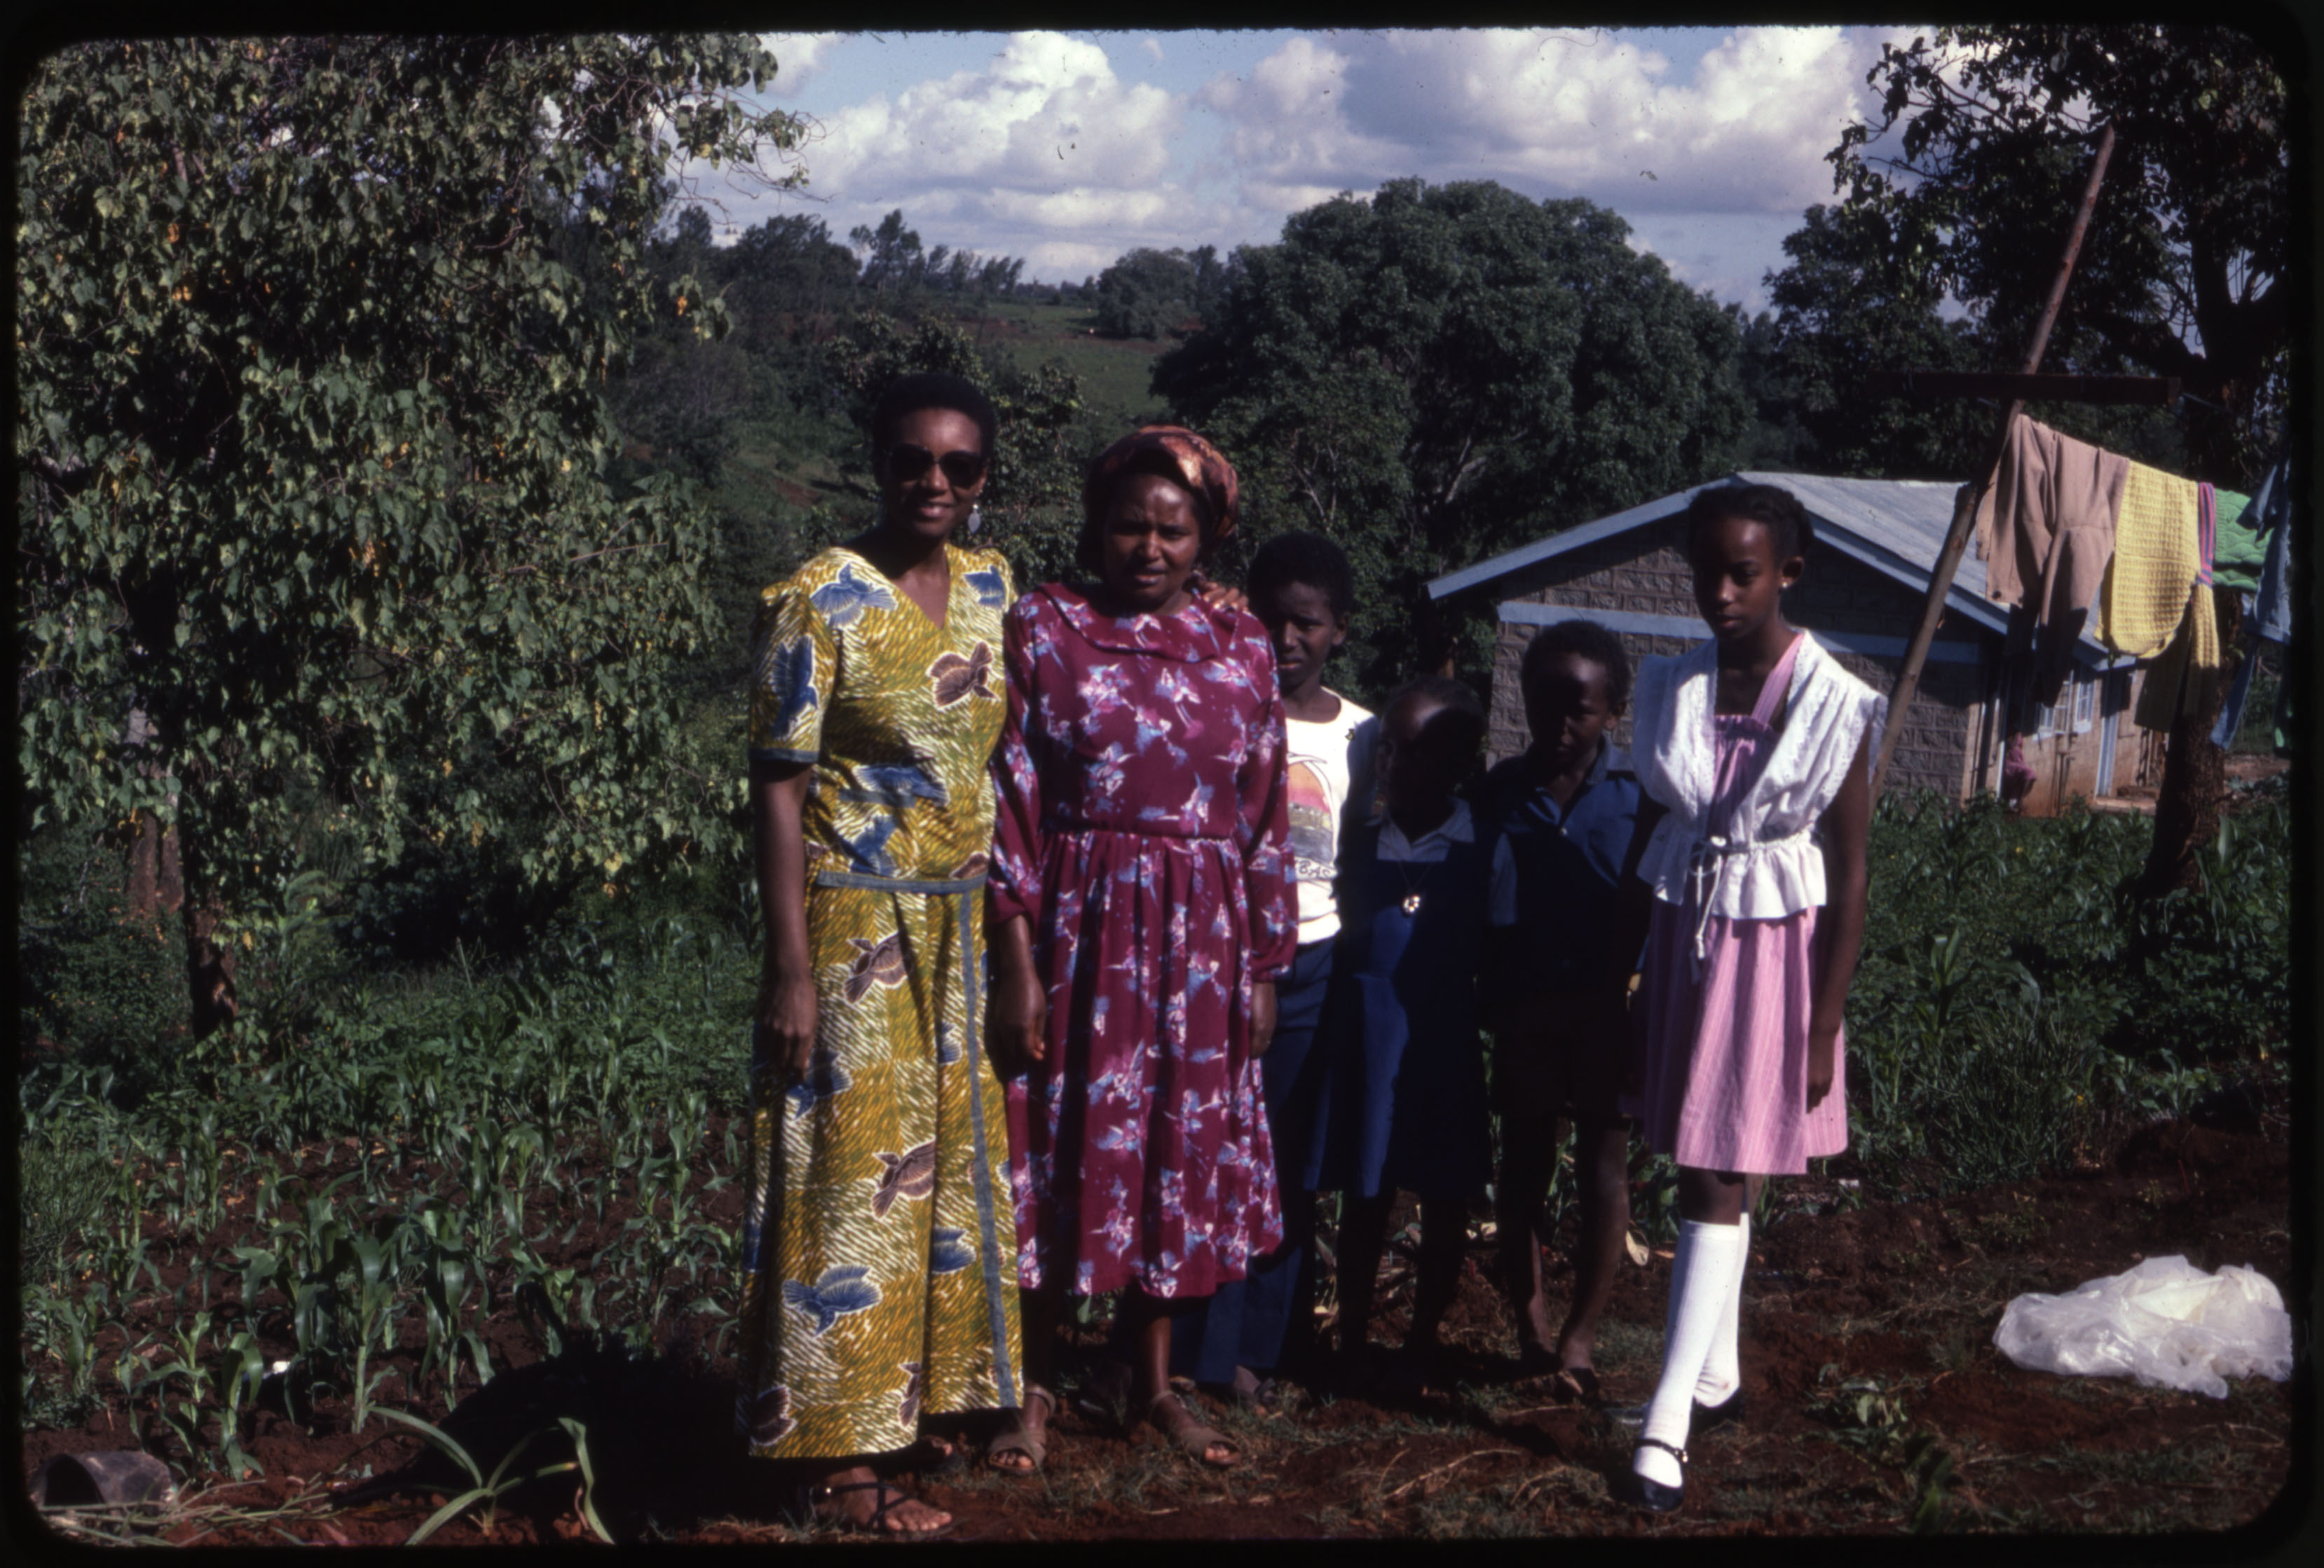 An image of: Carolyn Martin Shaw, on left, with family in Kenya, ca.1972